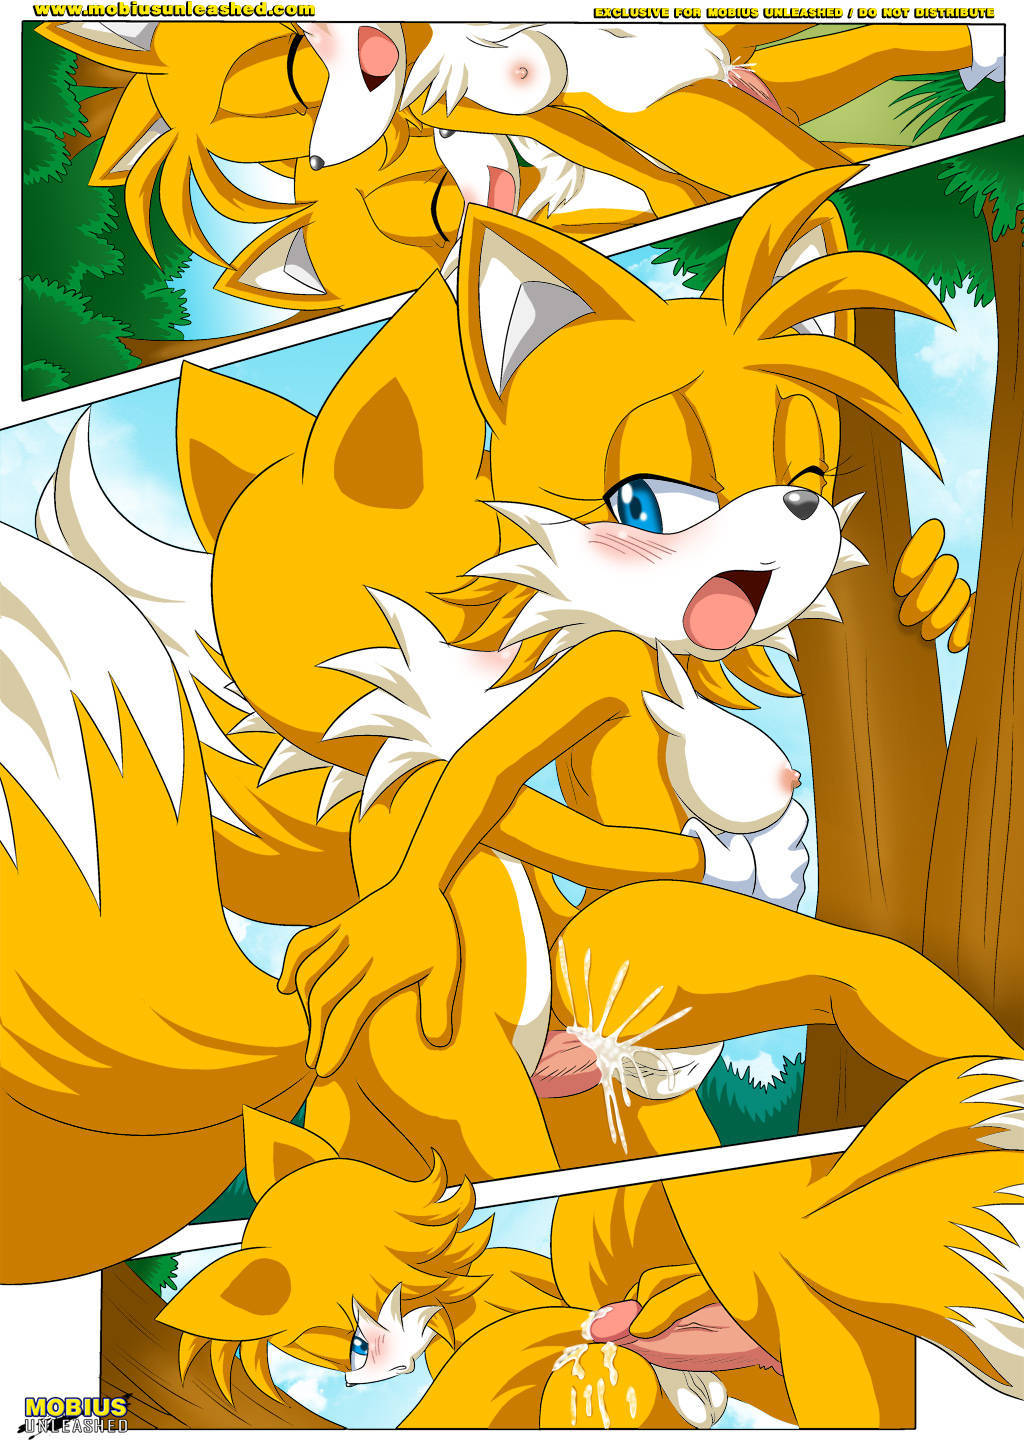 Girl miles tails prower hentai sexy images